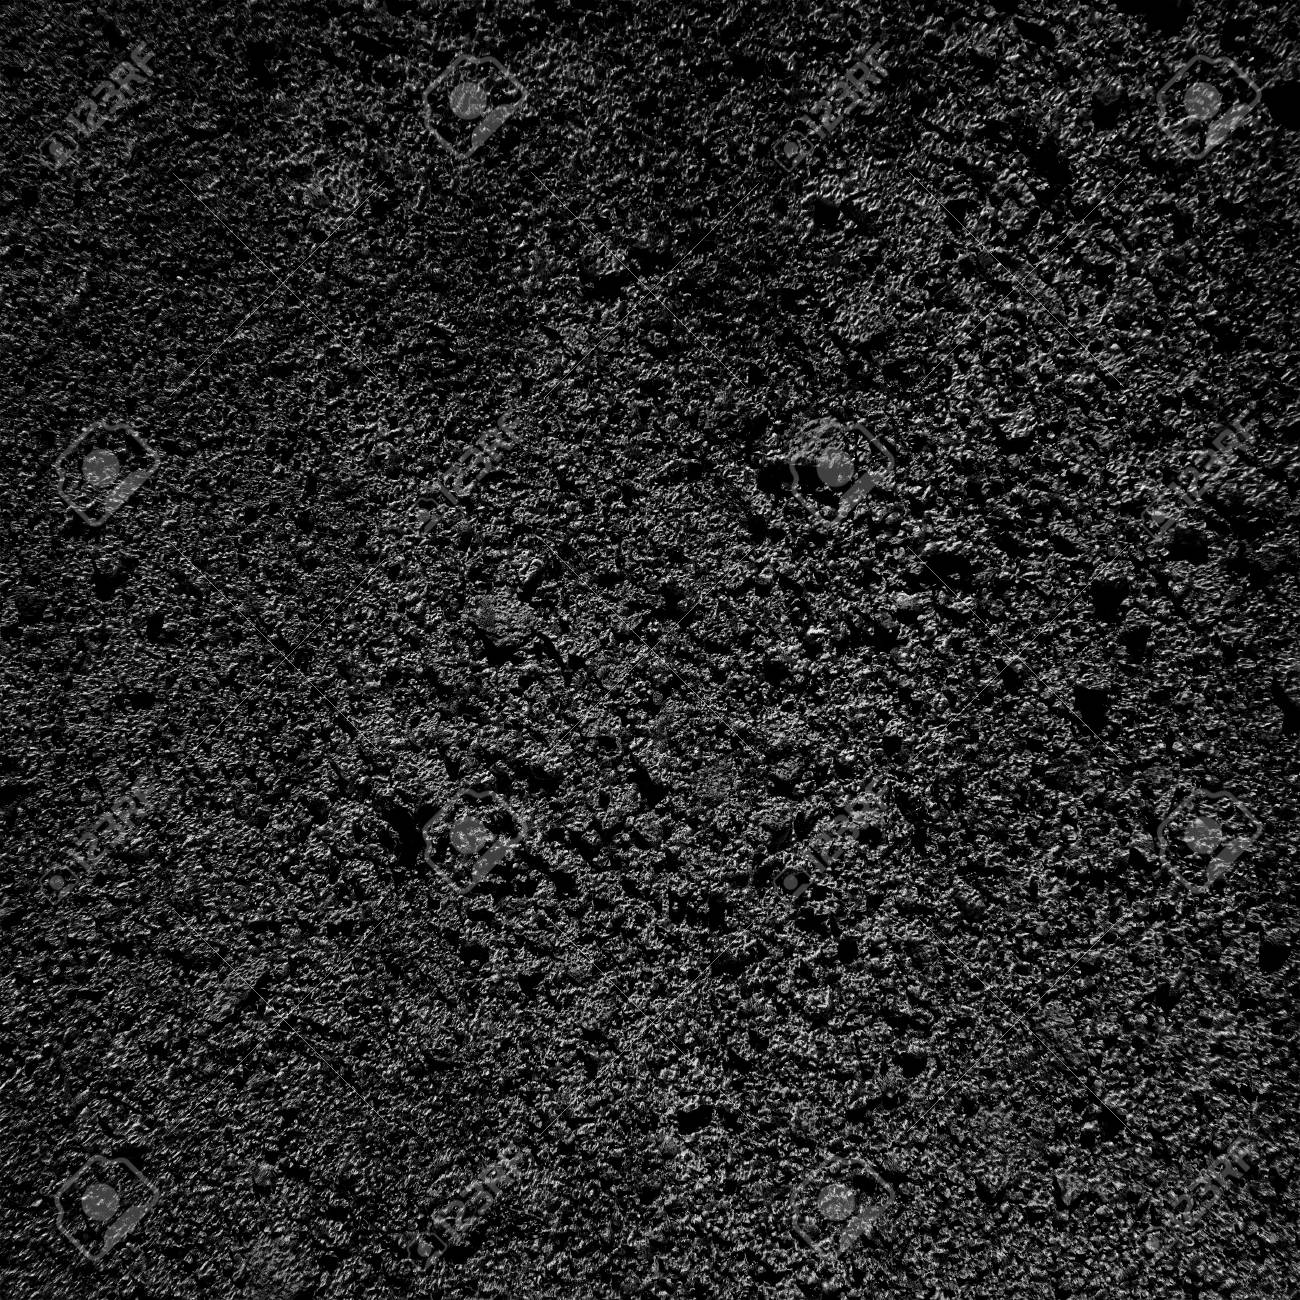 Black Textured Wall Background Texture Stock Photo Picture And Royalty Free Image Image 33320945